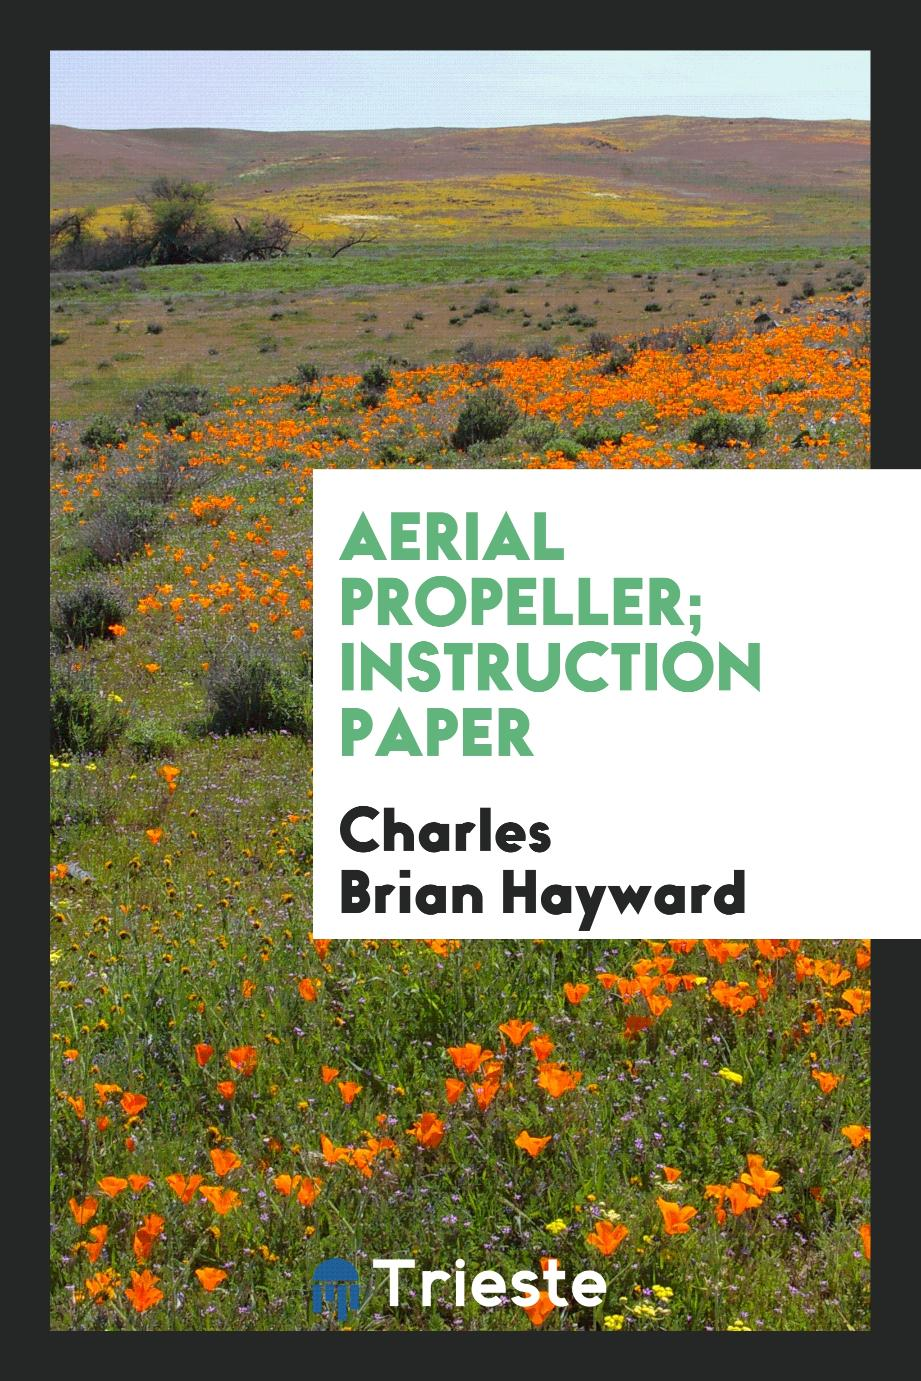 Aerial propeller; instruction paper